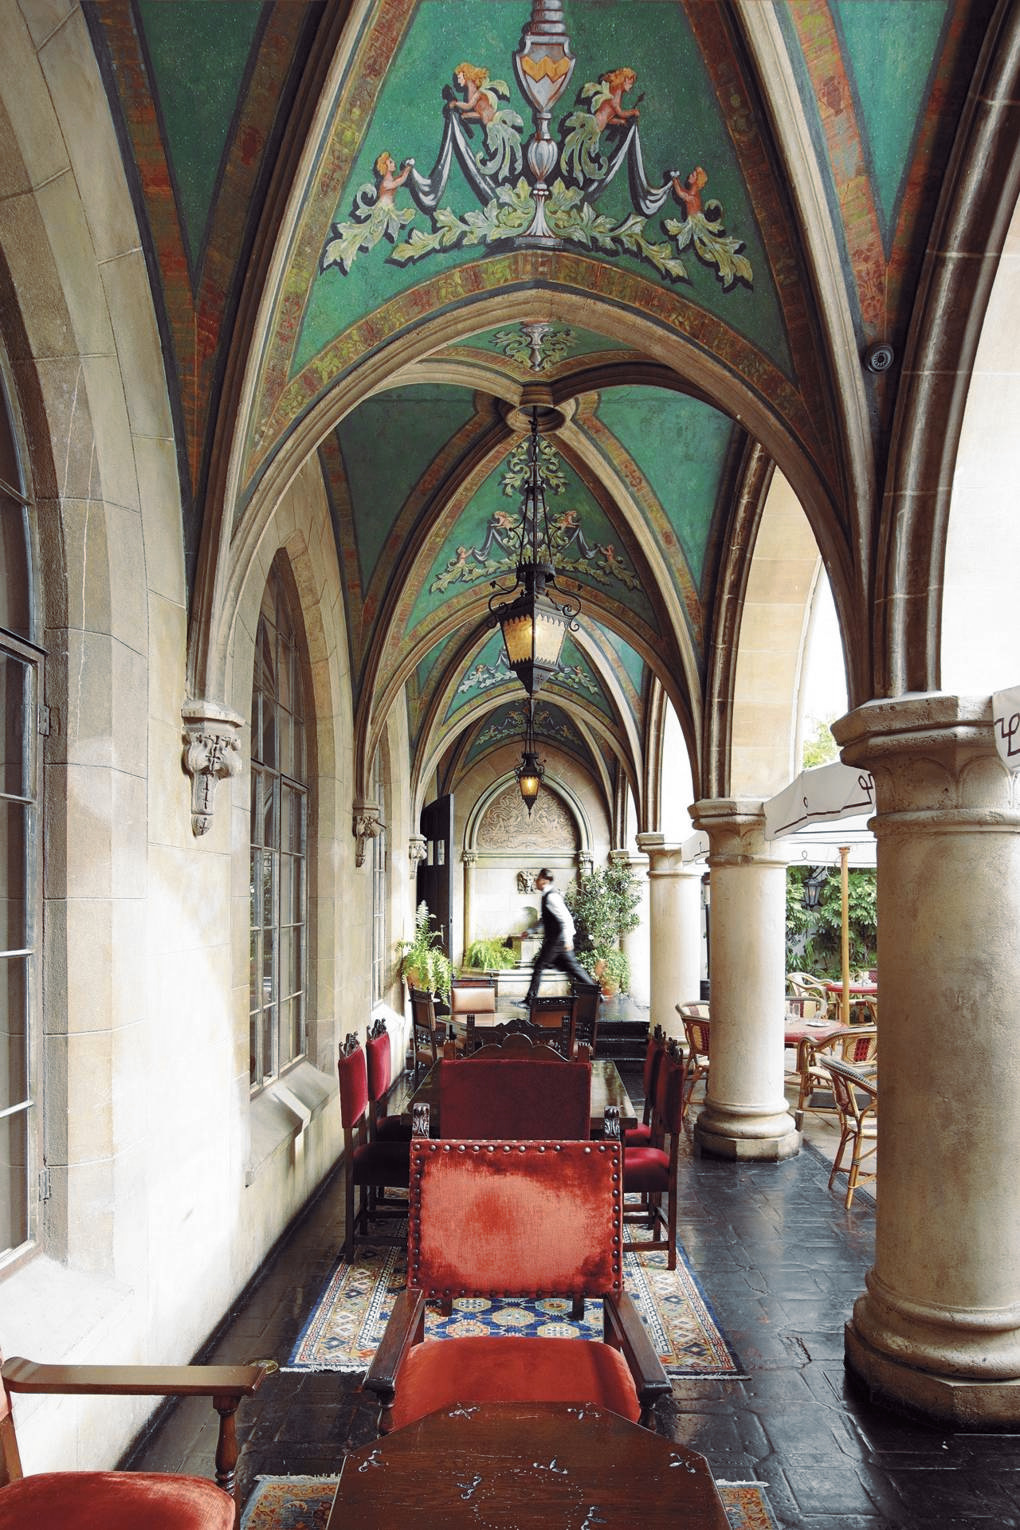 Hollywood loggia with Gothic arches